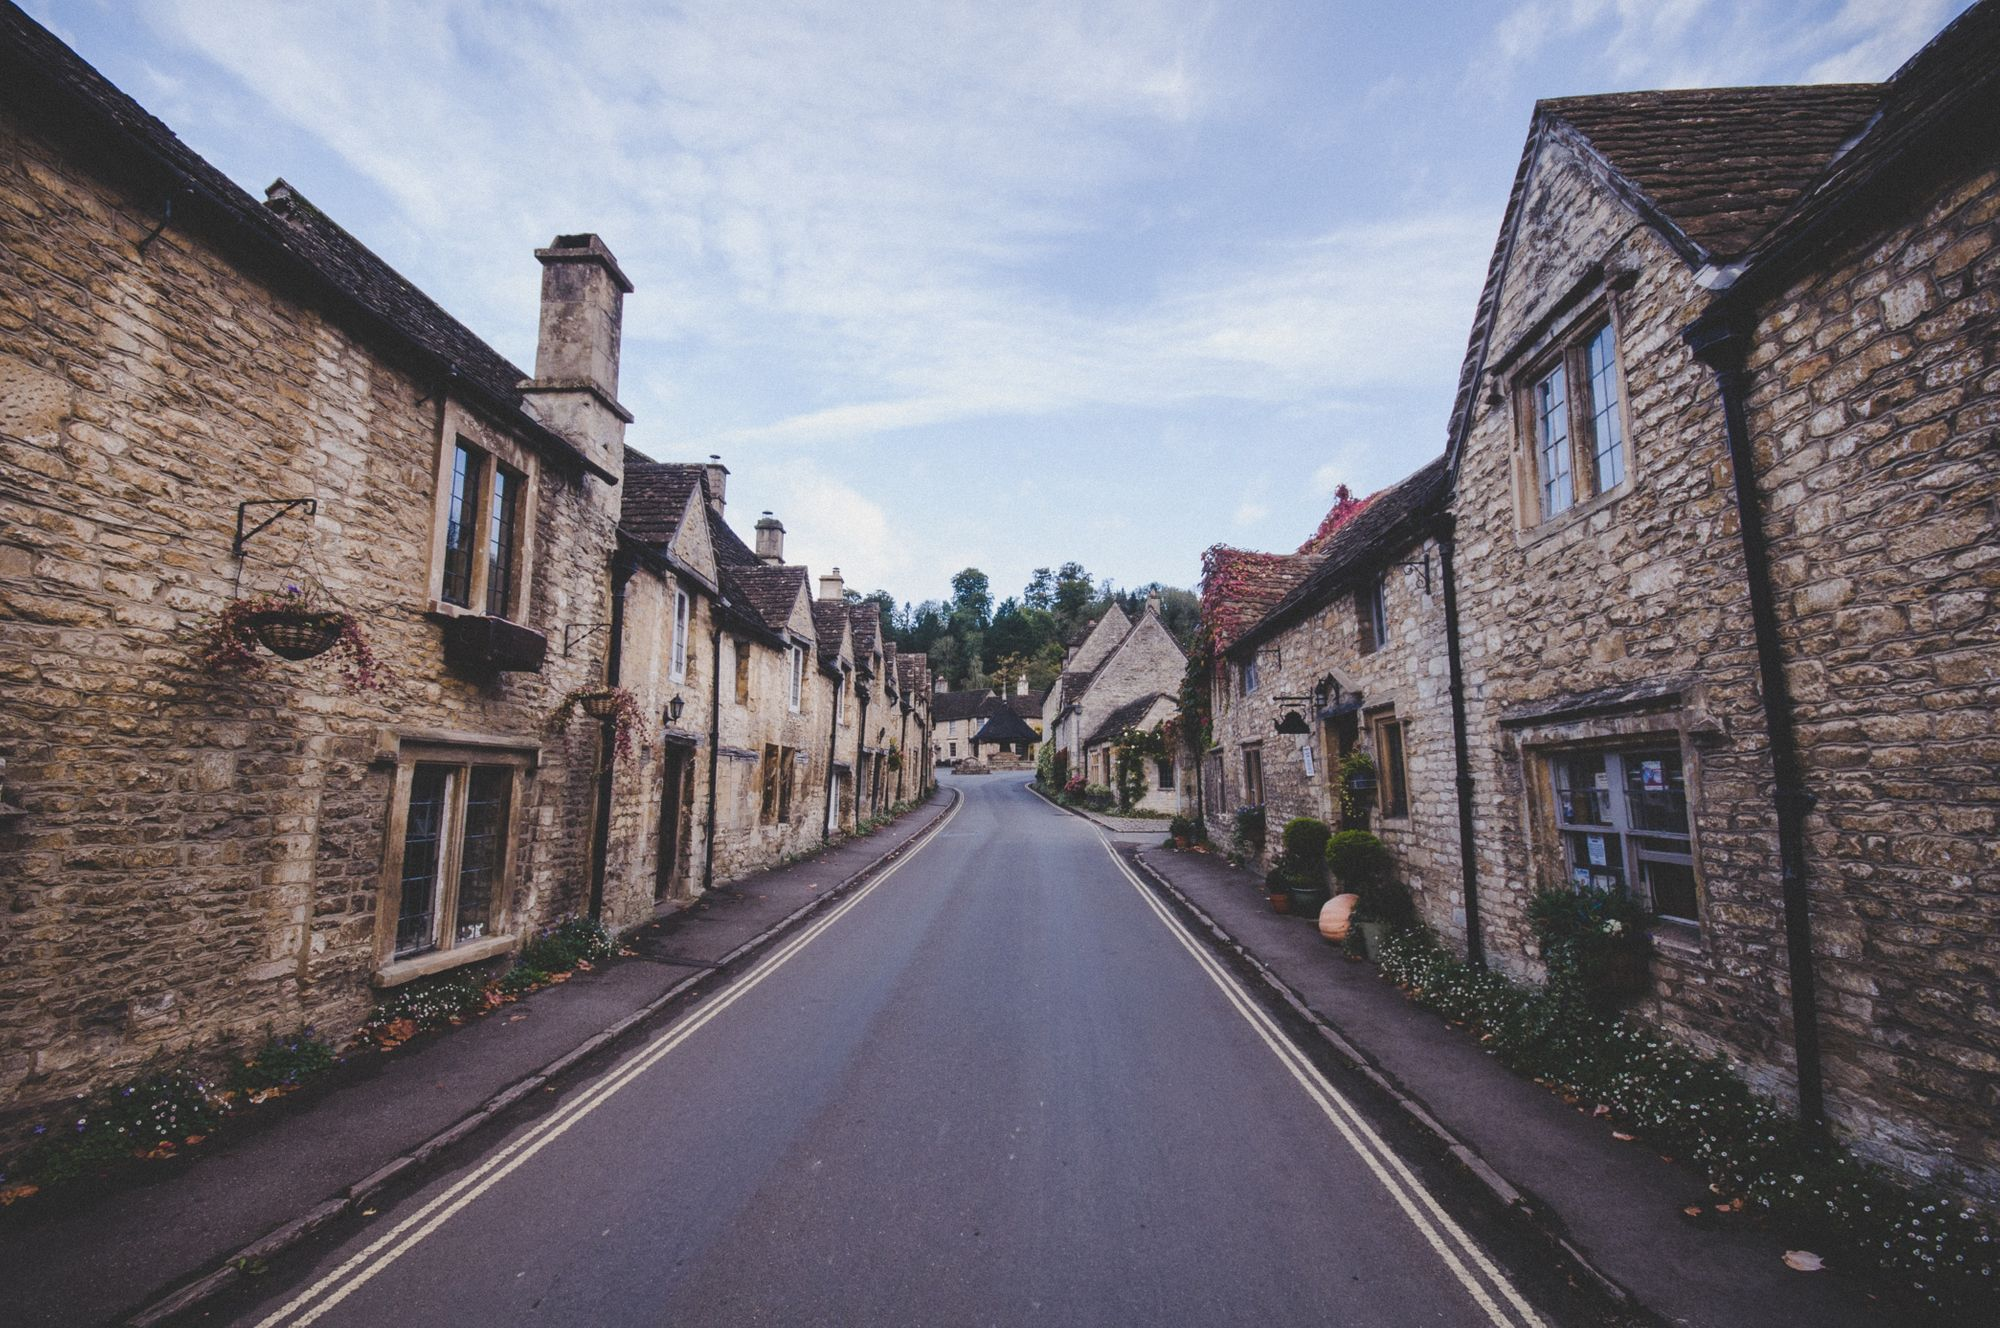 Street in Castle Combe, England